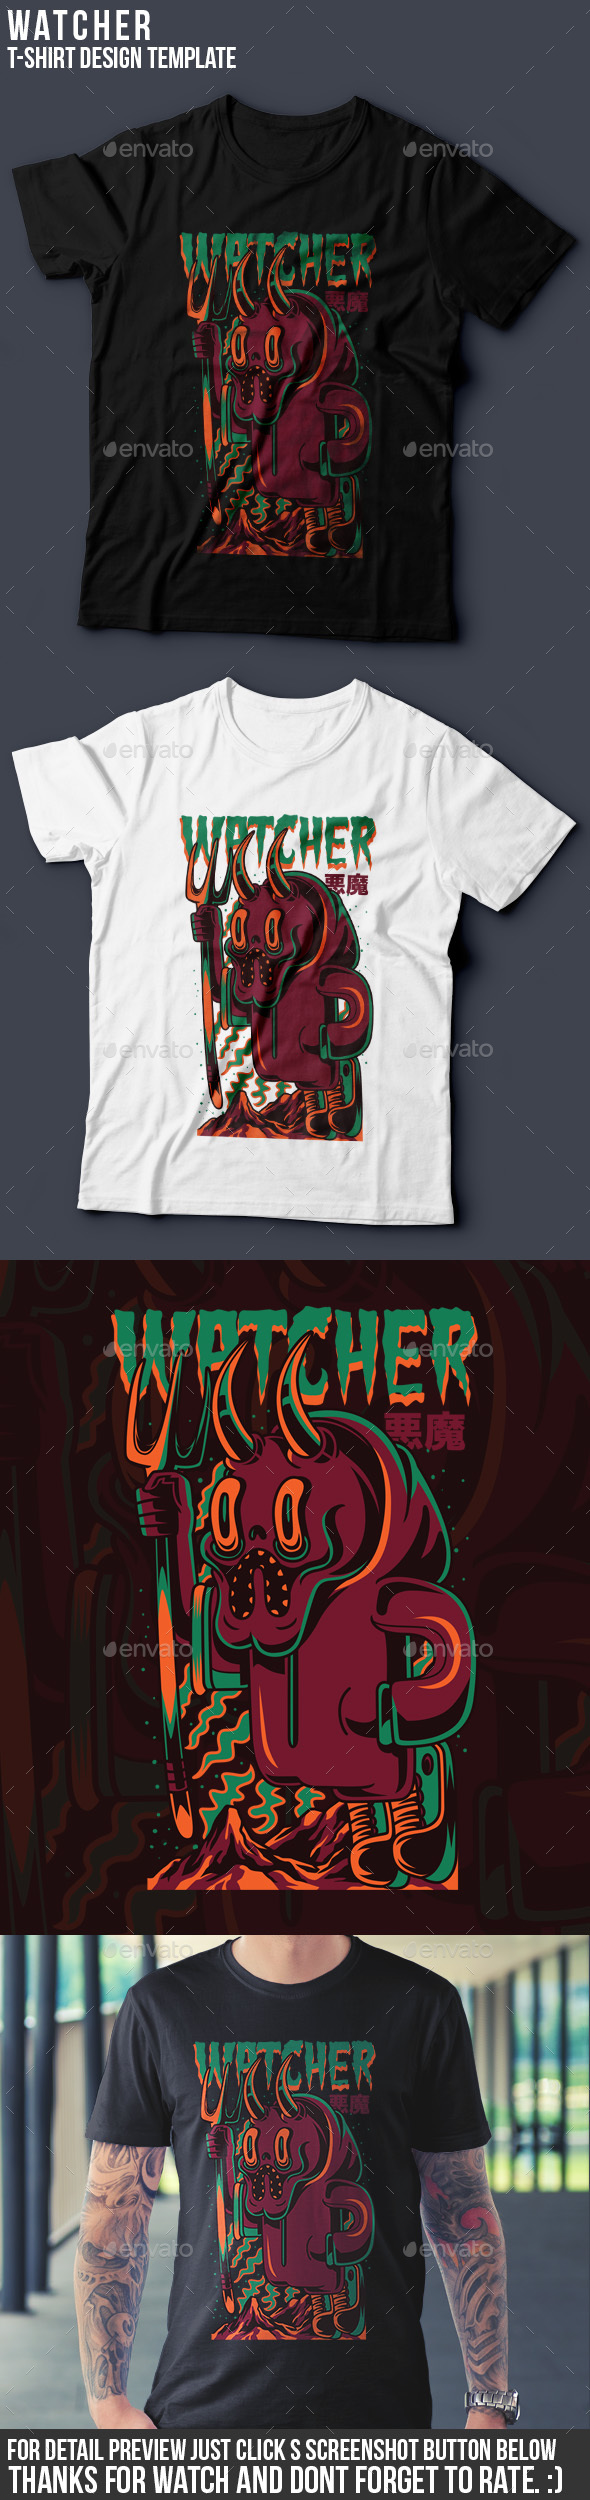 Watcher T-Shirt Design - Funny Designs